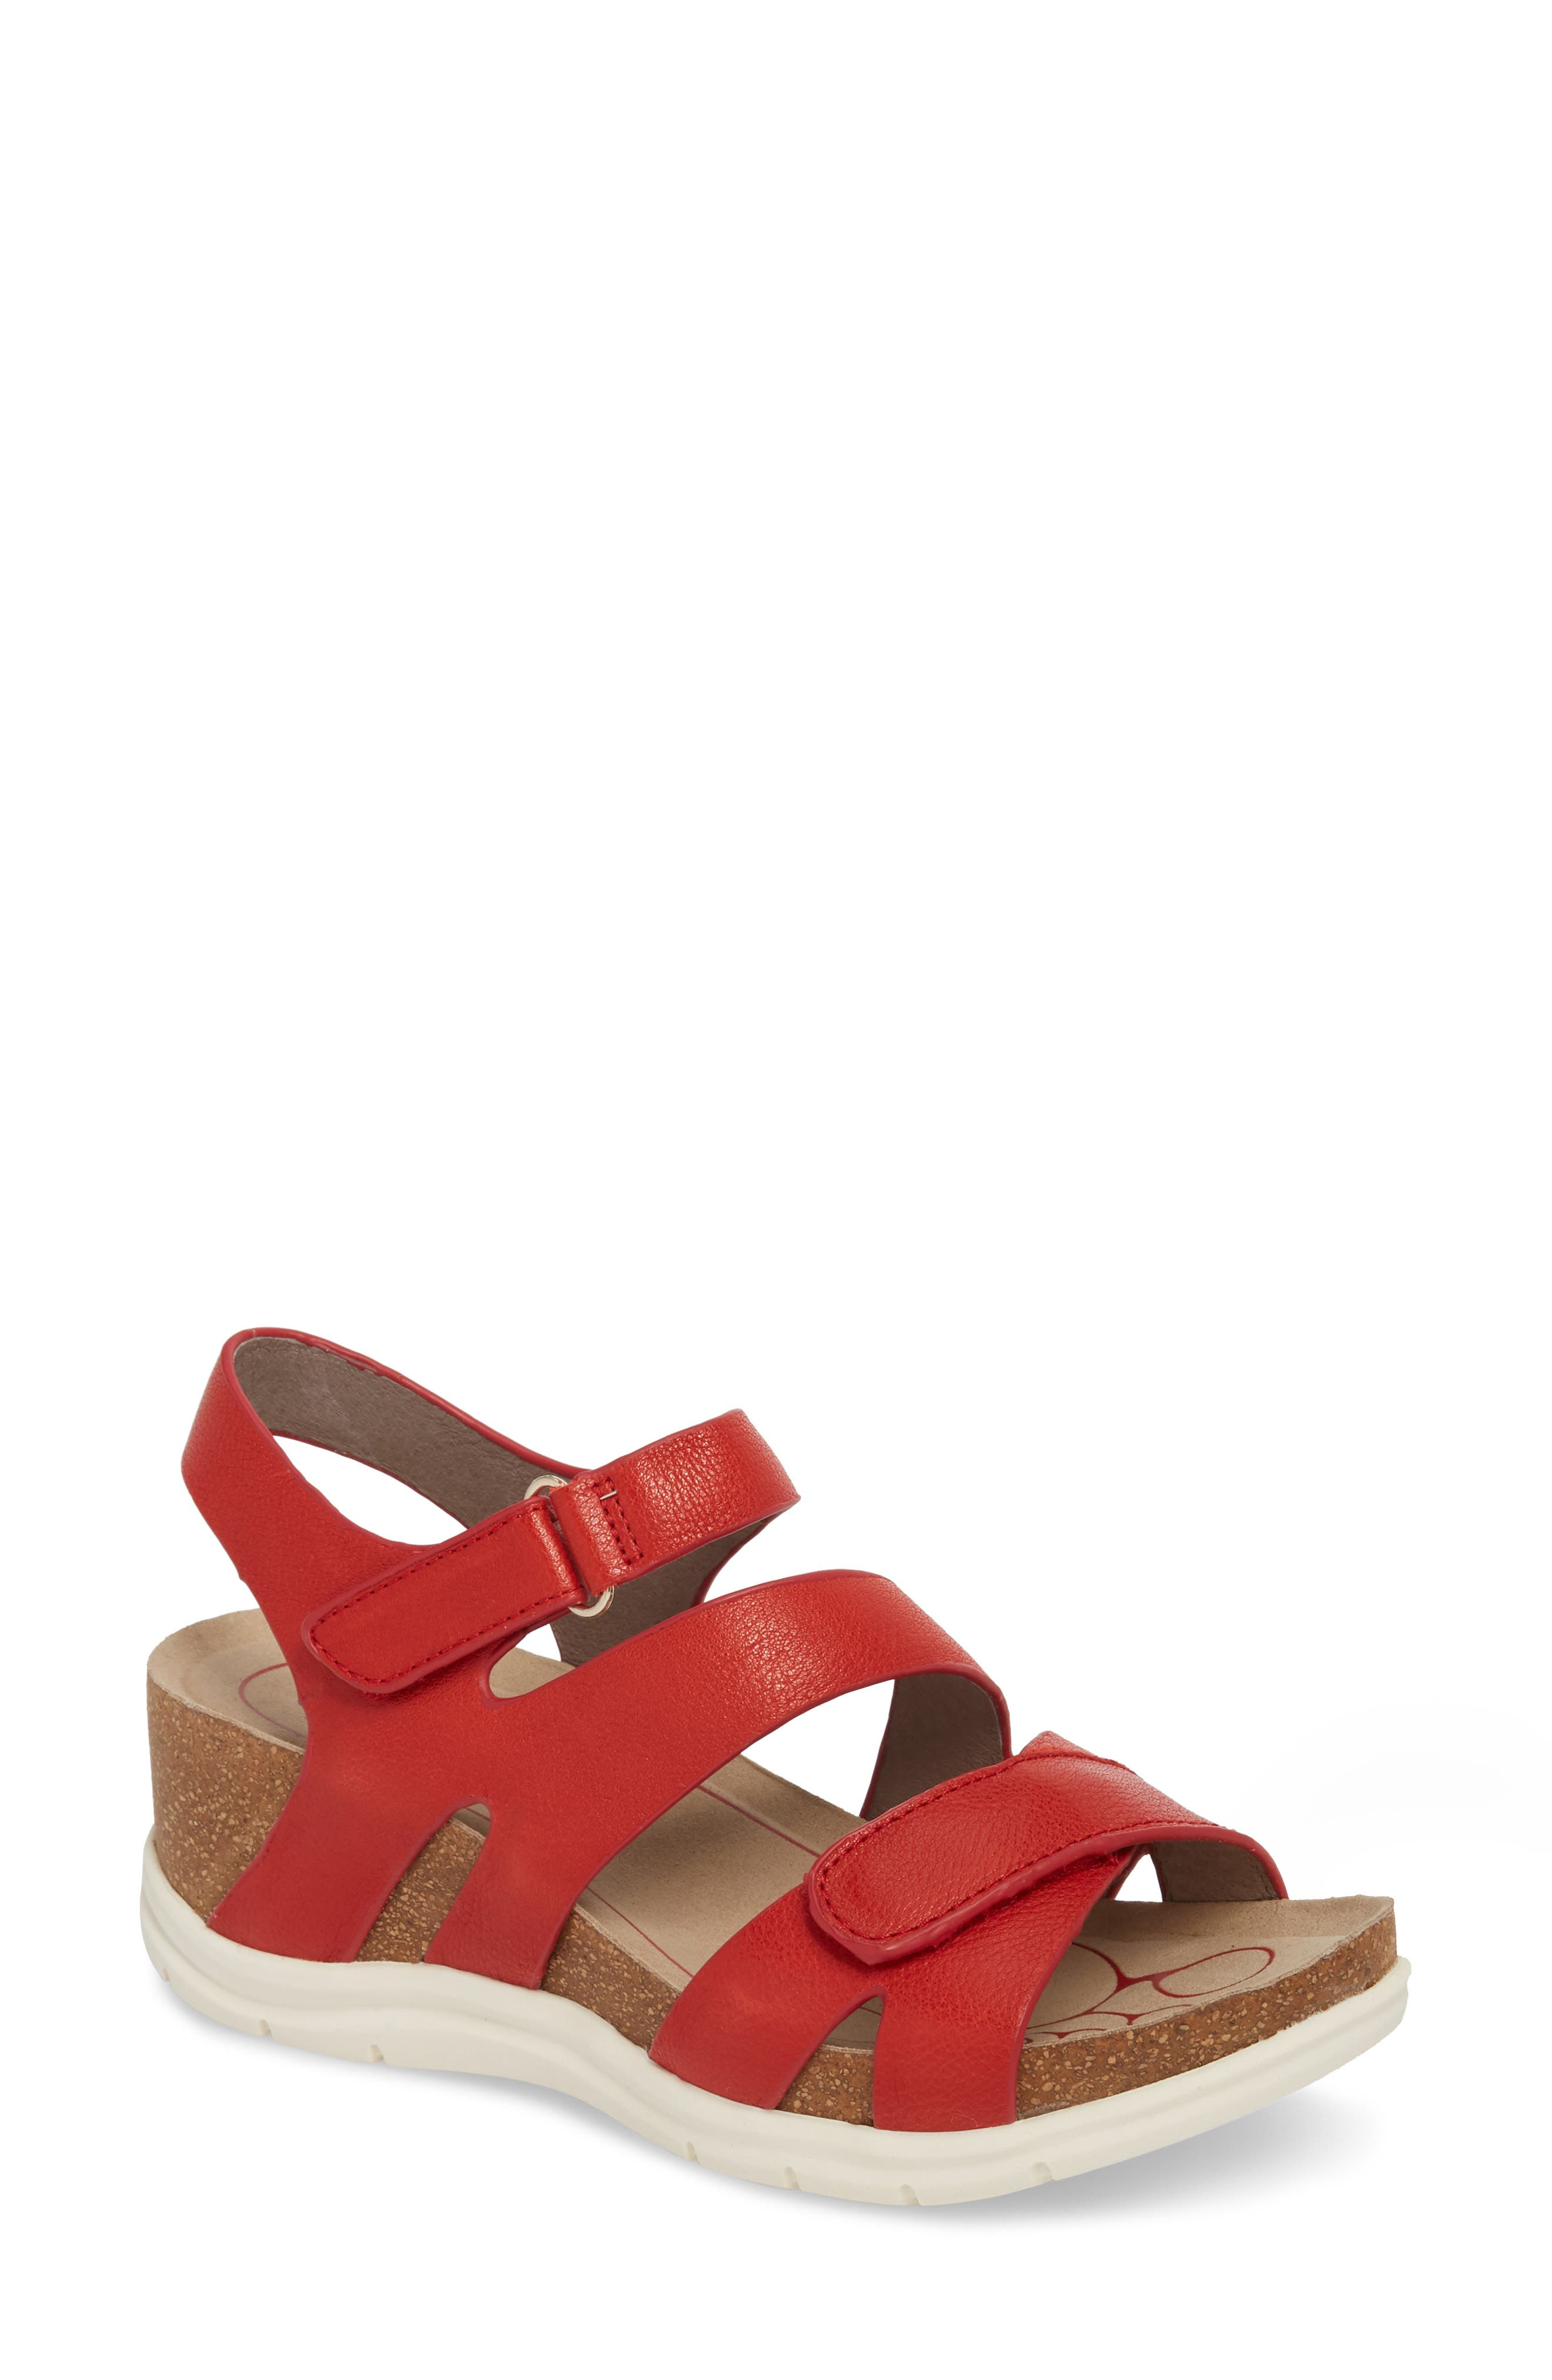 Passion Wedge Sandal,                         Main,                         color, FIRE RED LEATHER